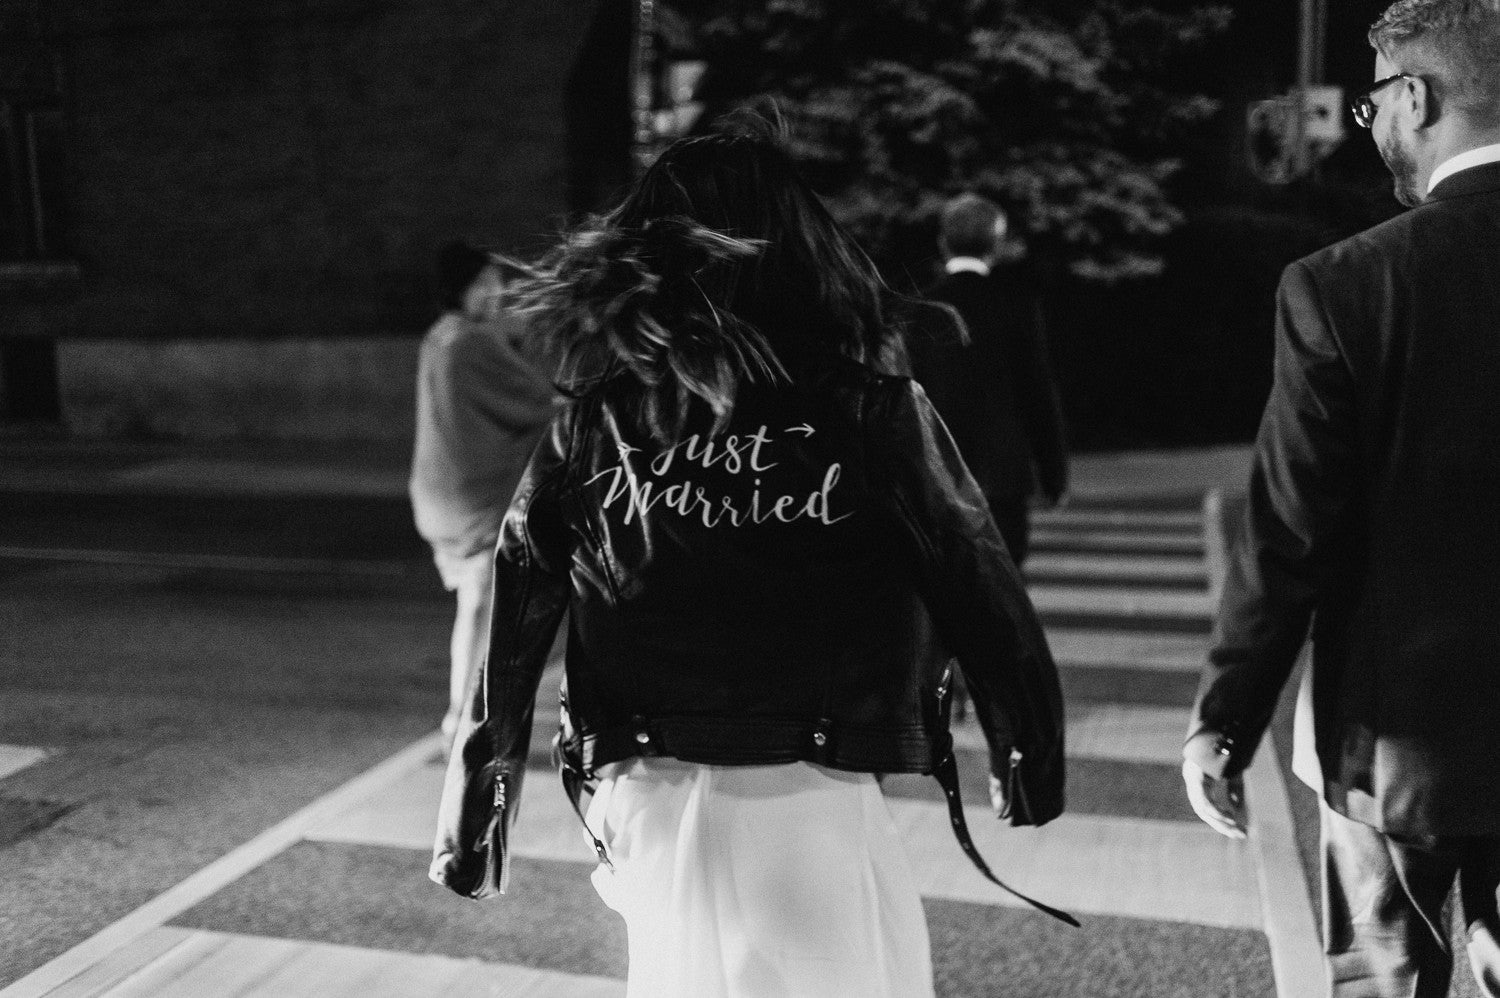 The Just Married Jacket